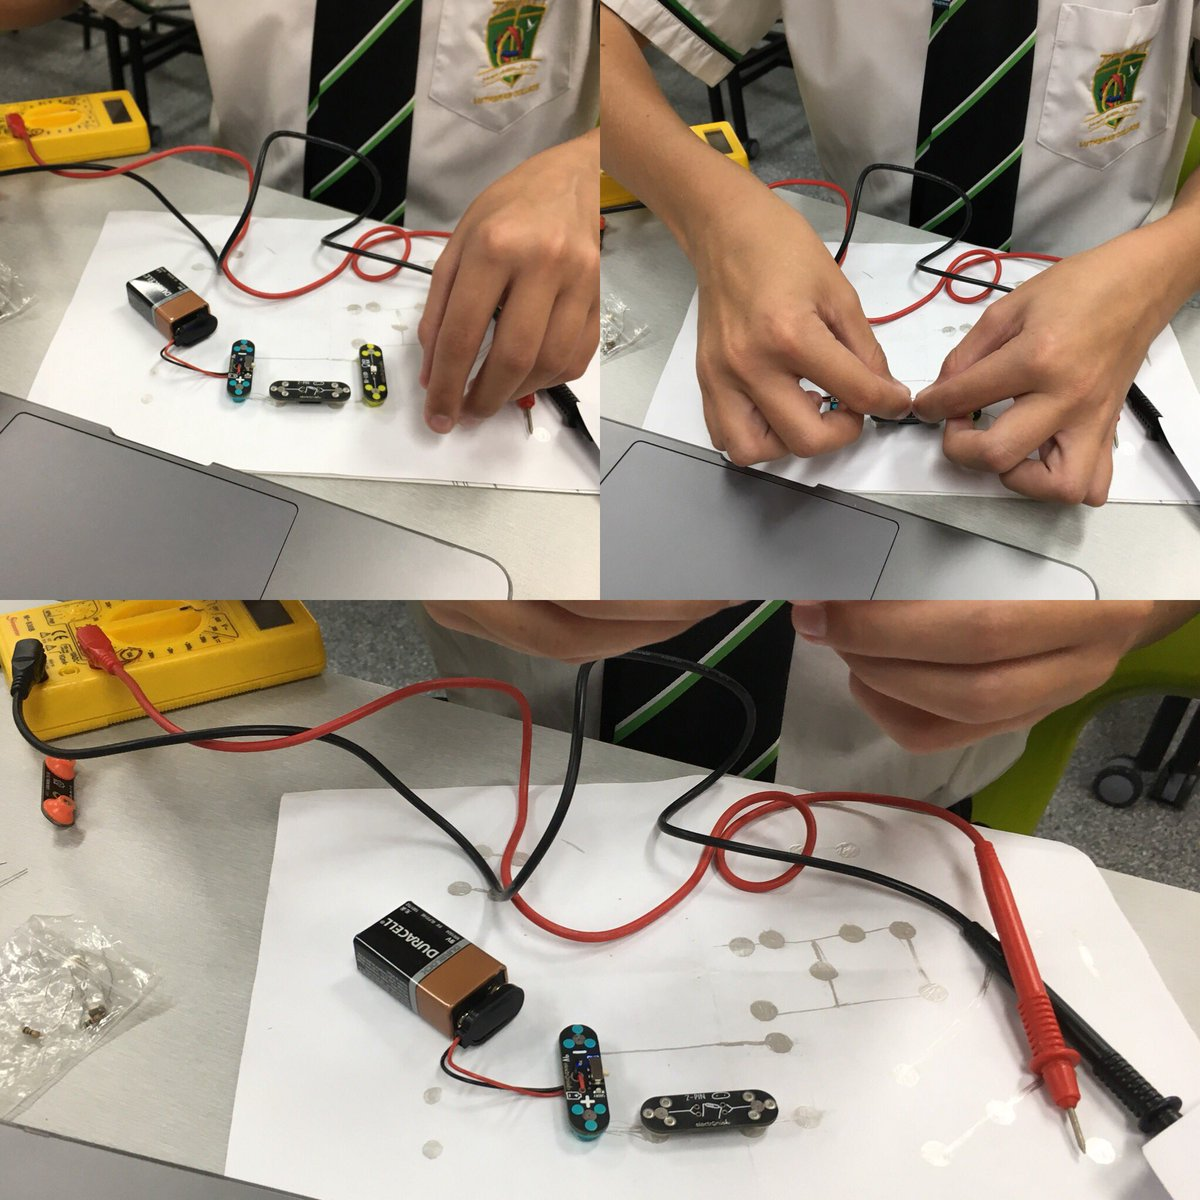 Circuitscribe Hashtag On Twitter Circuit Scribe Want Year 7 Steam Students Getting Creative With Electricity Physics Science Technology Engineering Art Maths